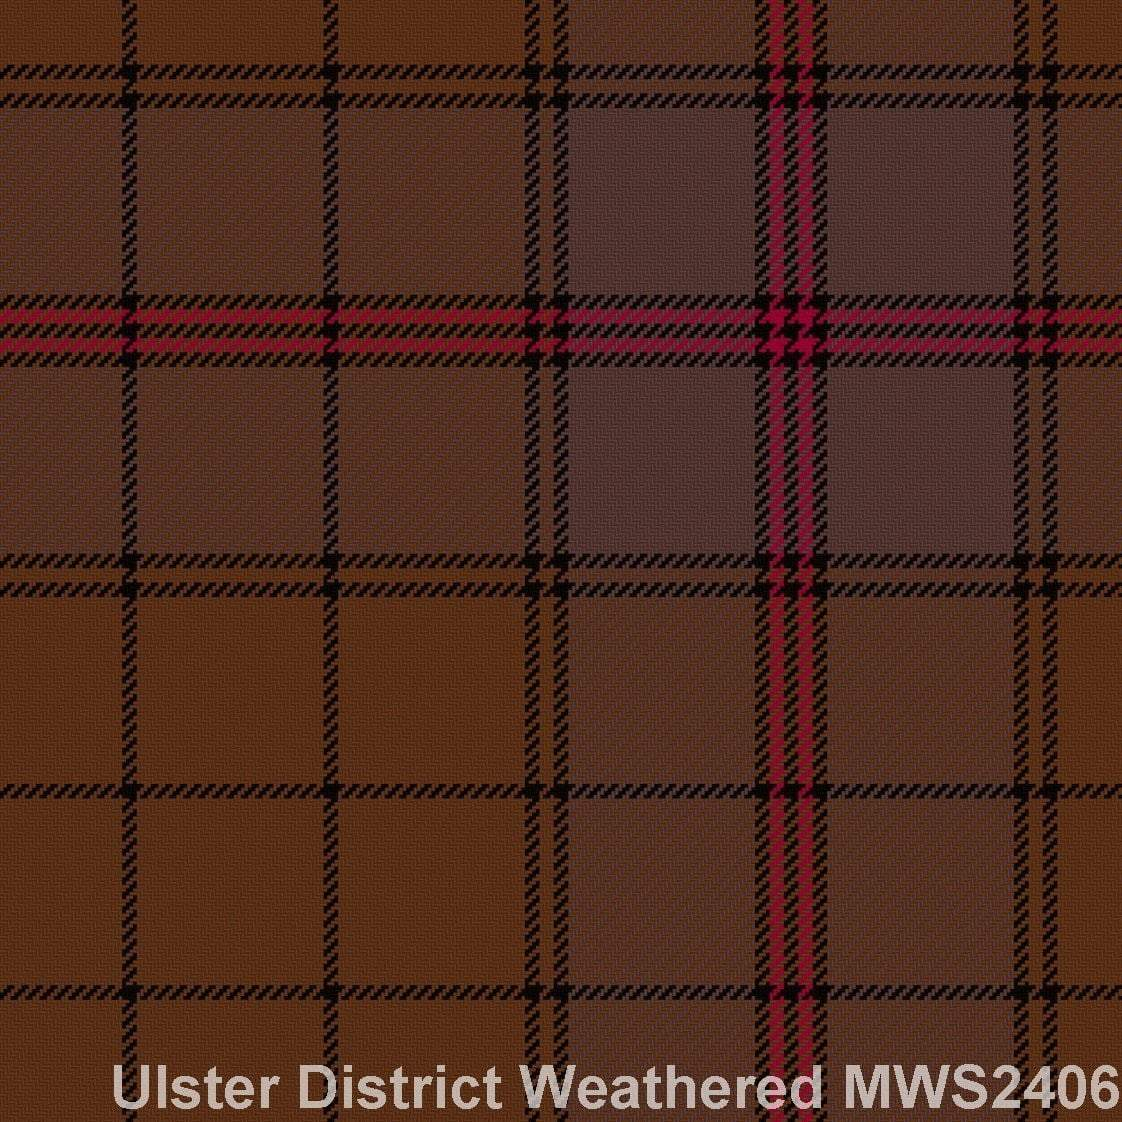 Ulster District Weathered